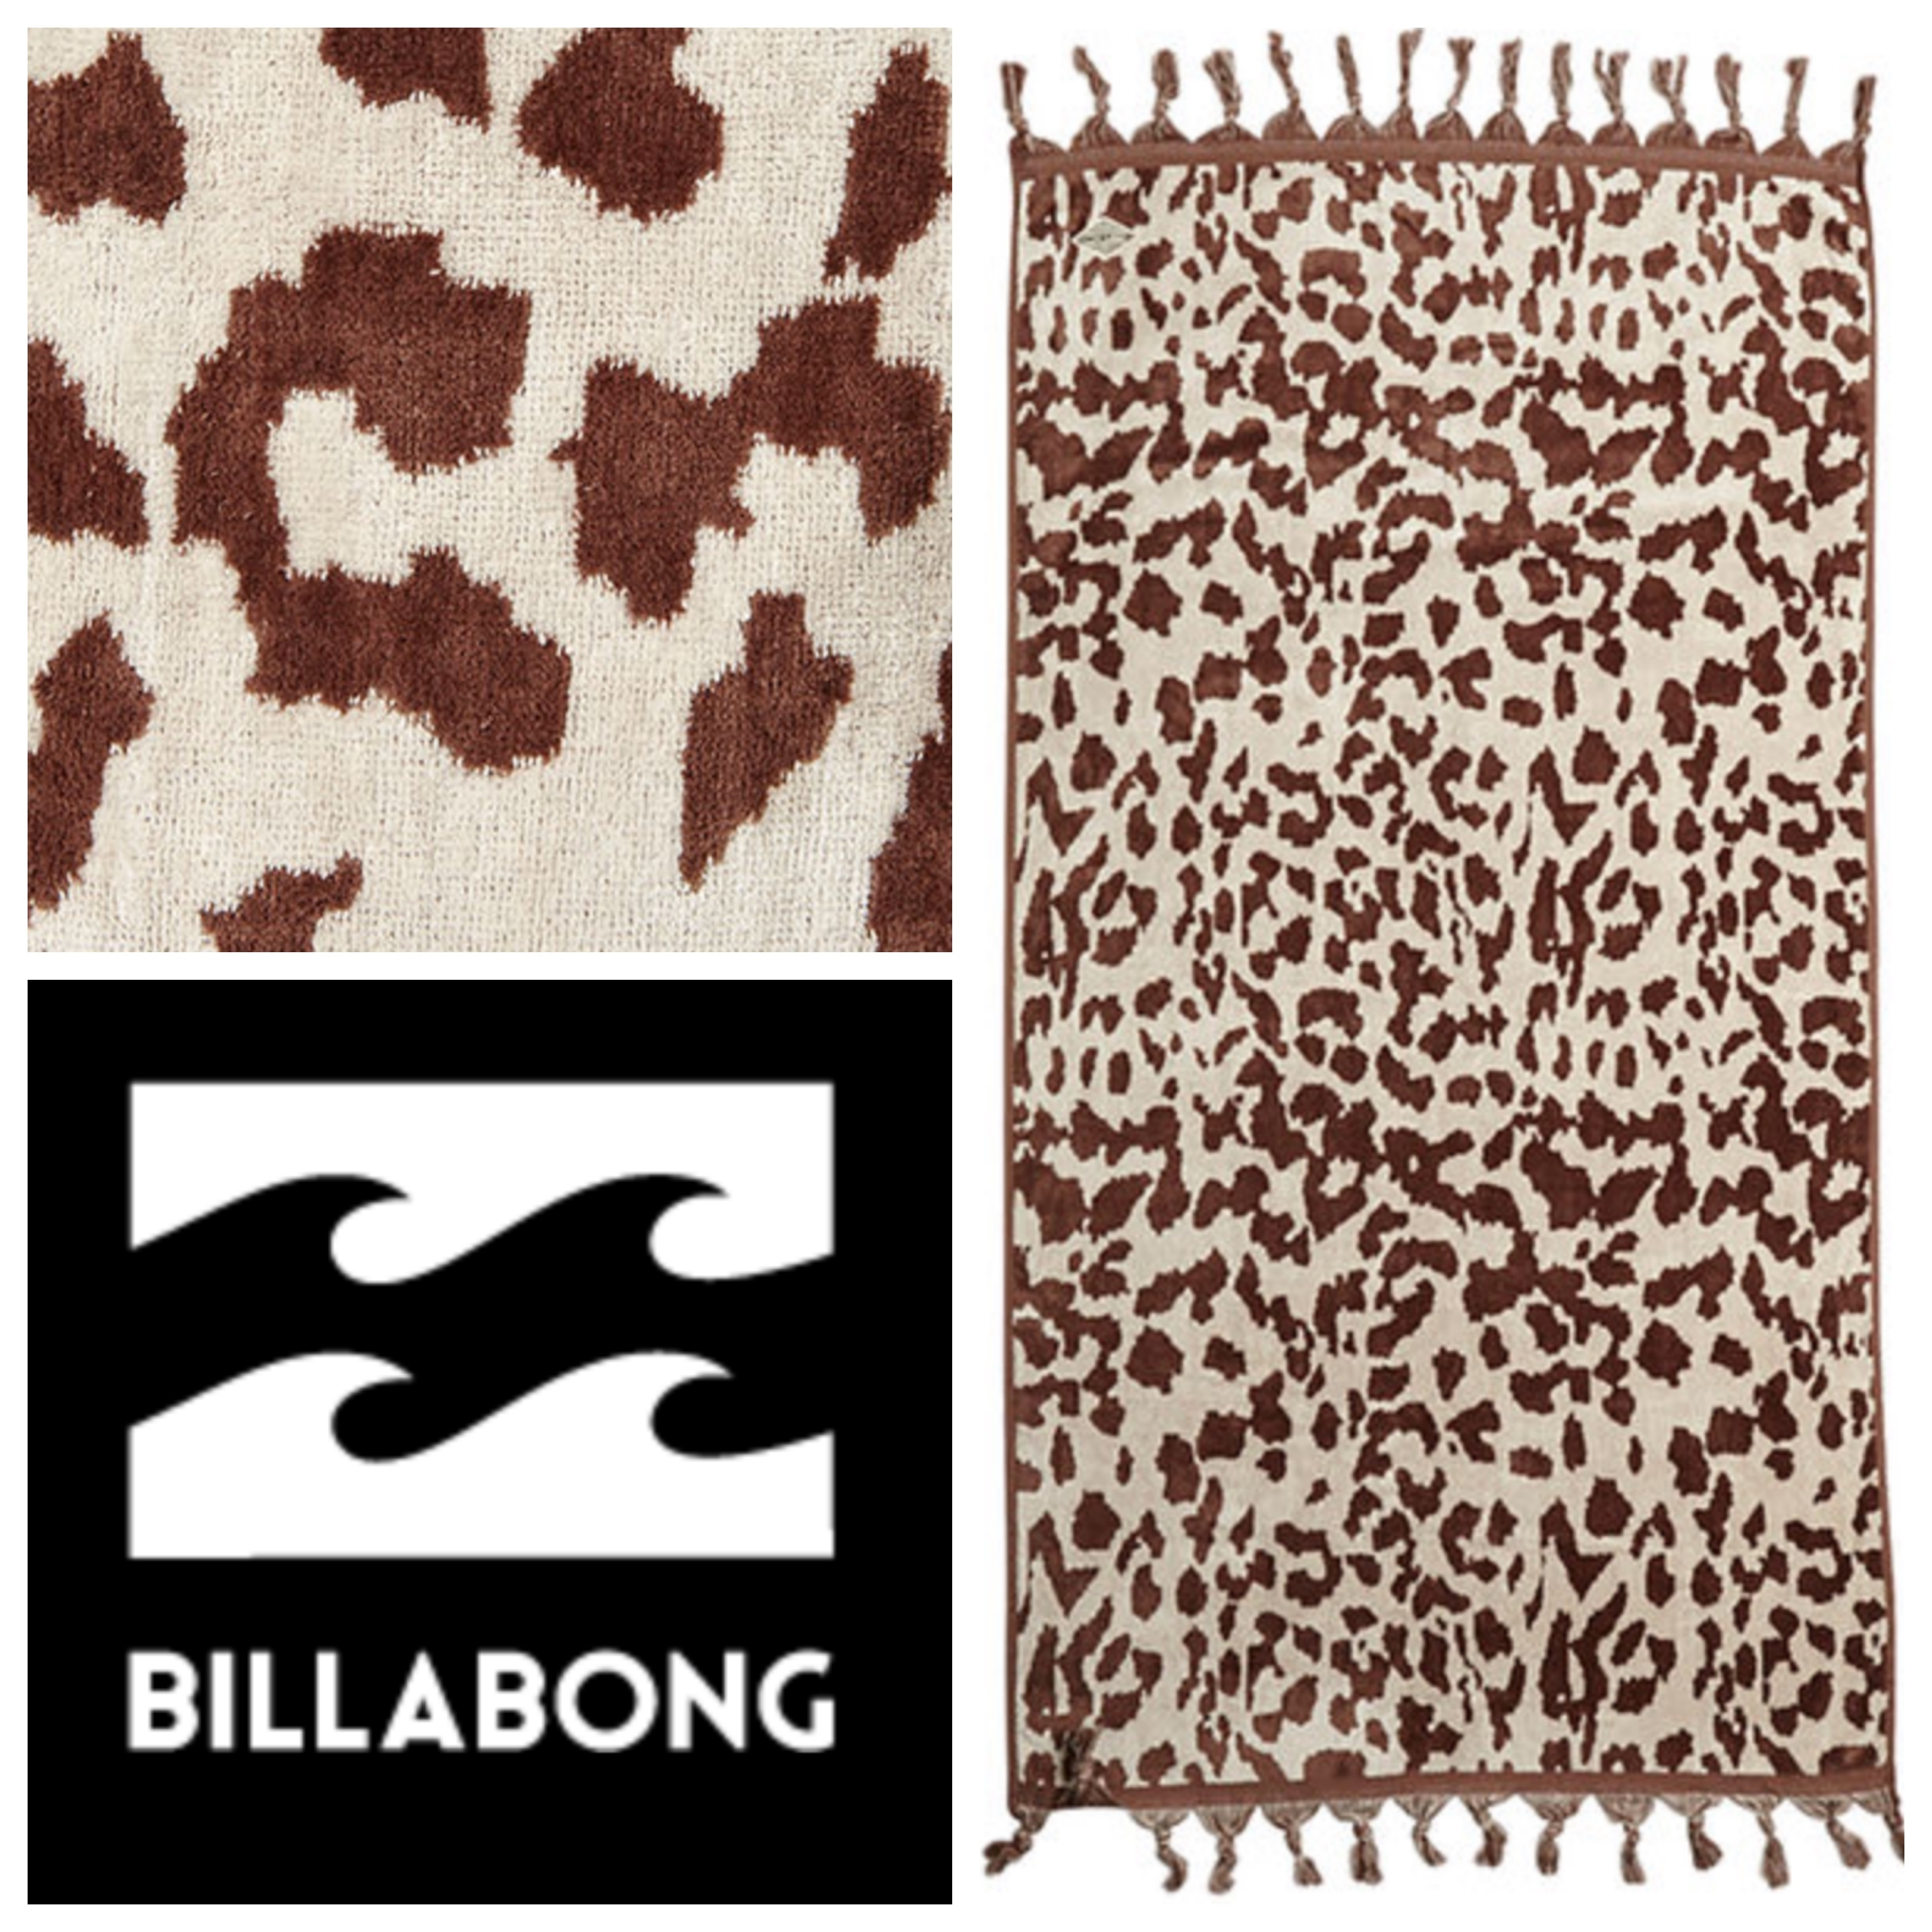 ビーチタオル☆BILLABONG ANIMALIA TOWEL